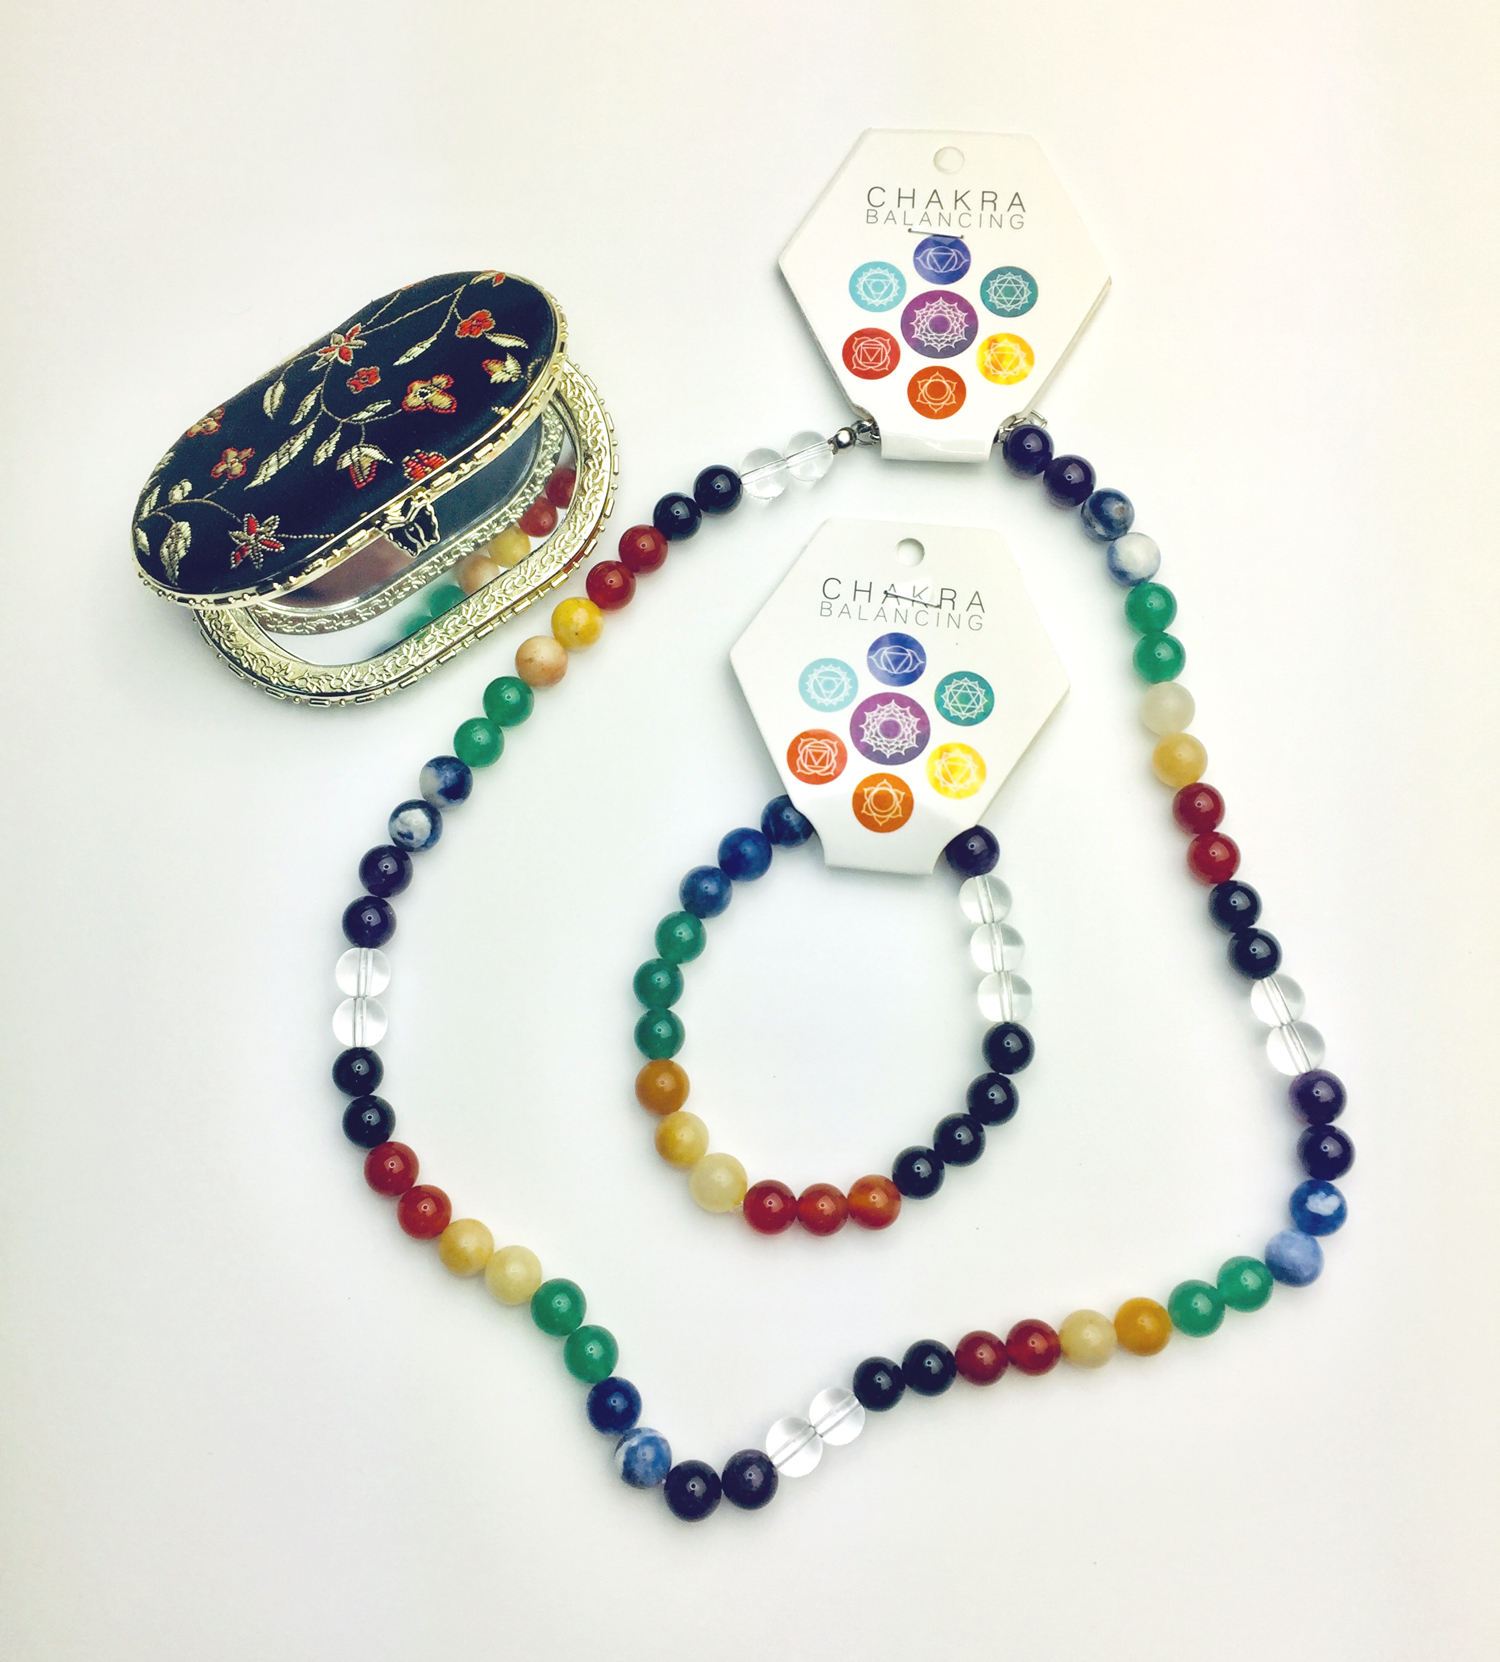 Studio 55 gifts, including jewellery, based in Essex